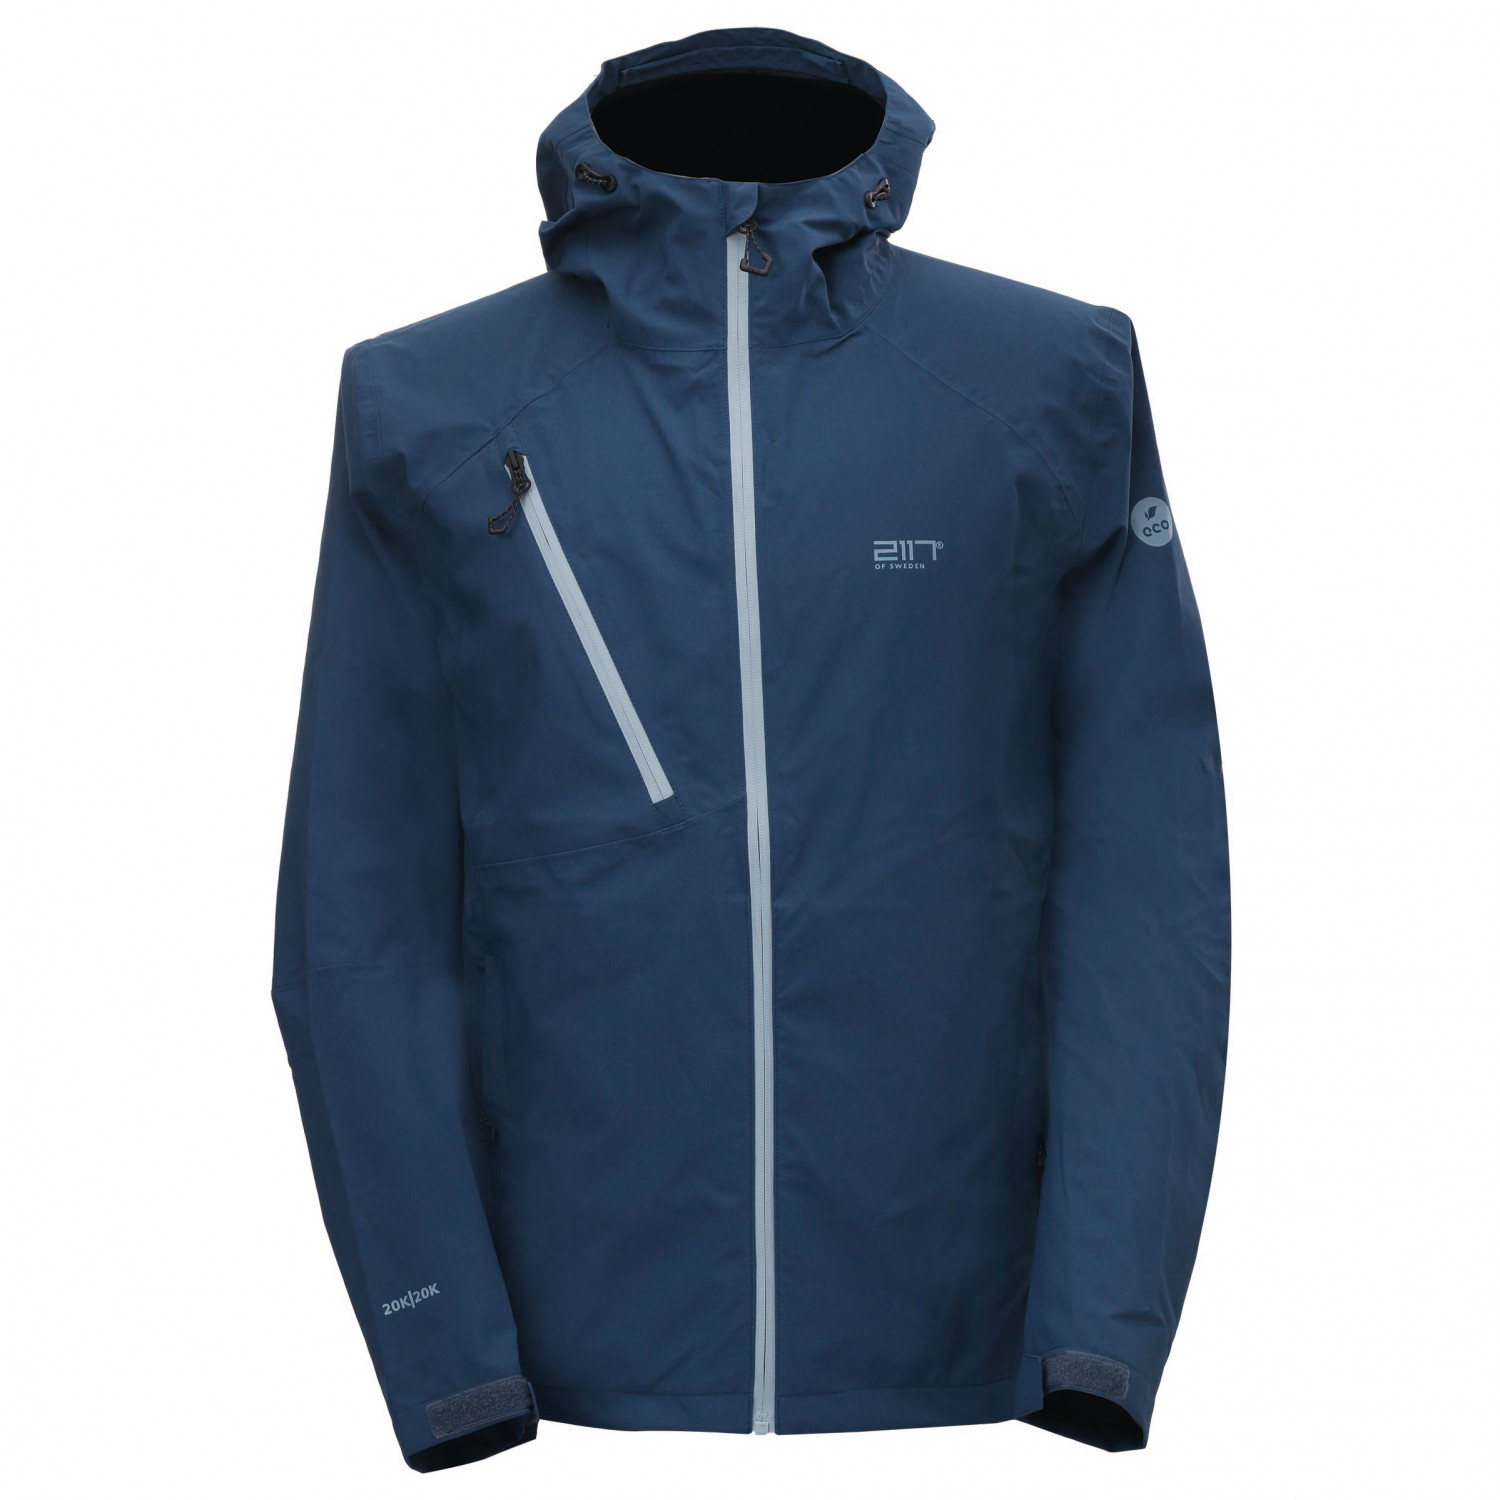 2117 of Sweden Götene Jacket Regenjacke Navy | XXL